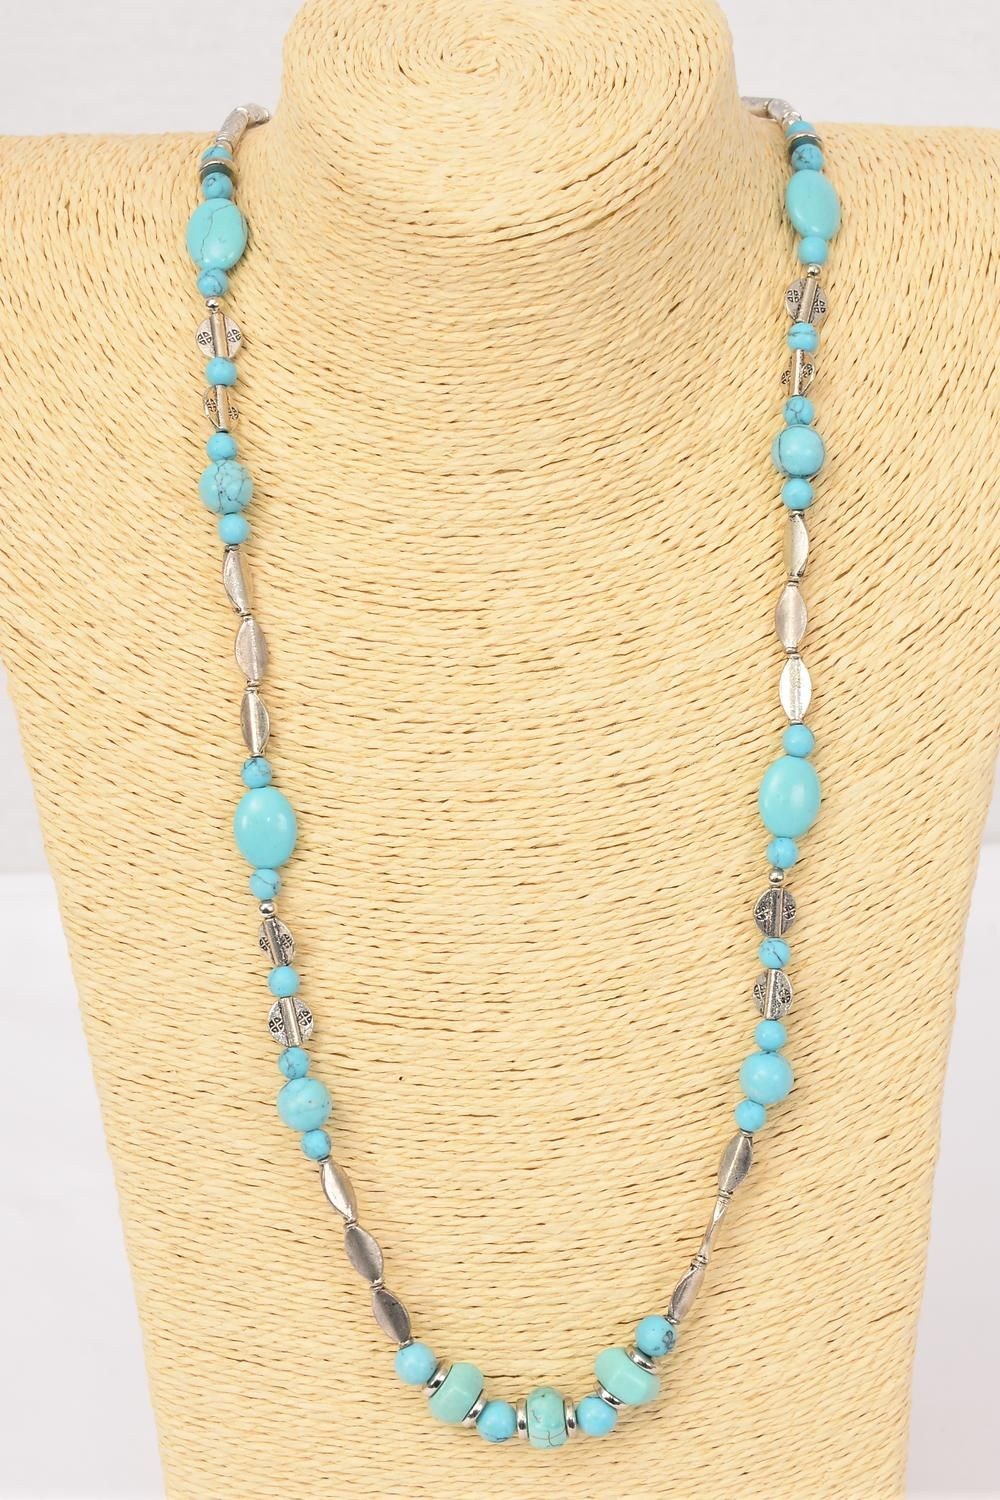 "Necklace Silver Turquoise Semiprecious Stones/PC Size-32"" Long, Hang tag & Opp Bag & UPC Code"